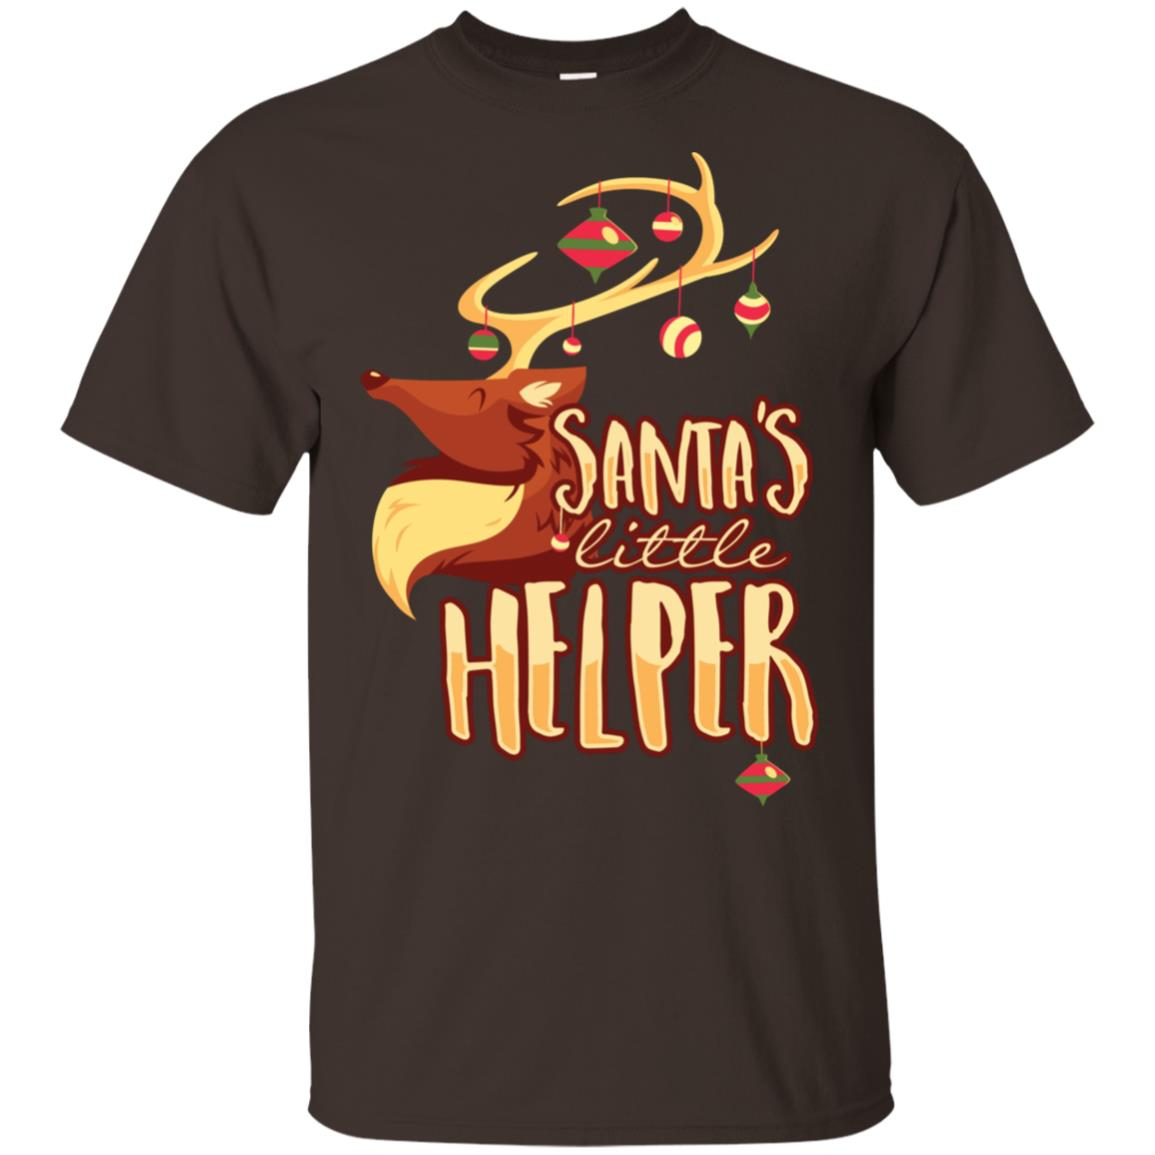 Caribou reindeer tees little helper T-Sh Unisex Short Sleeve